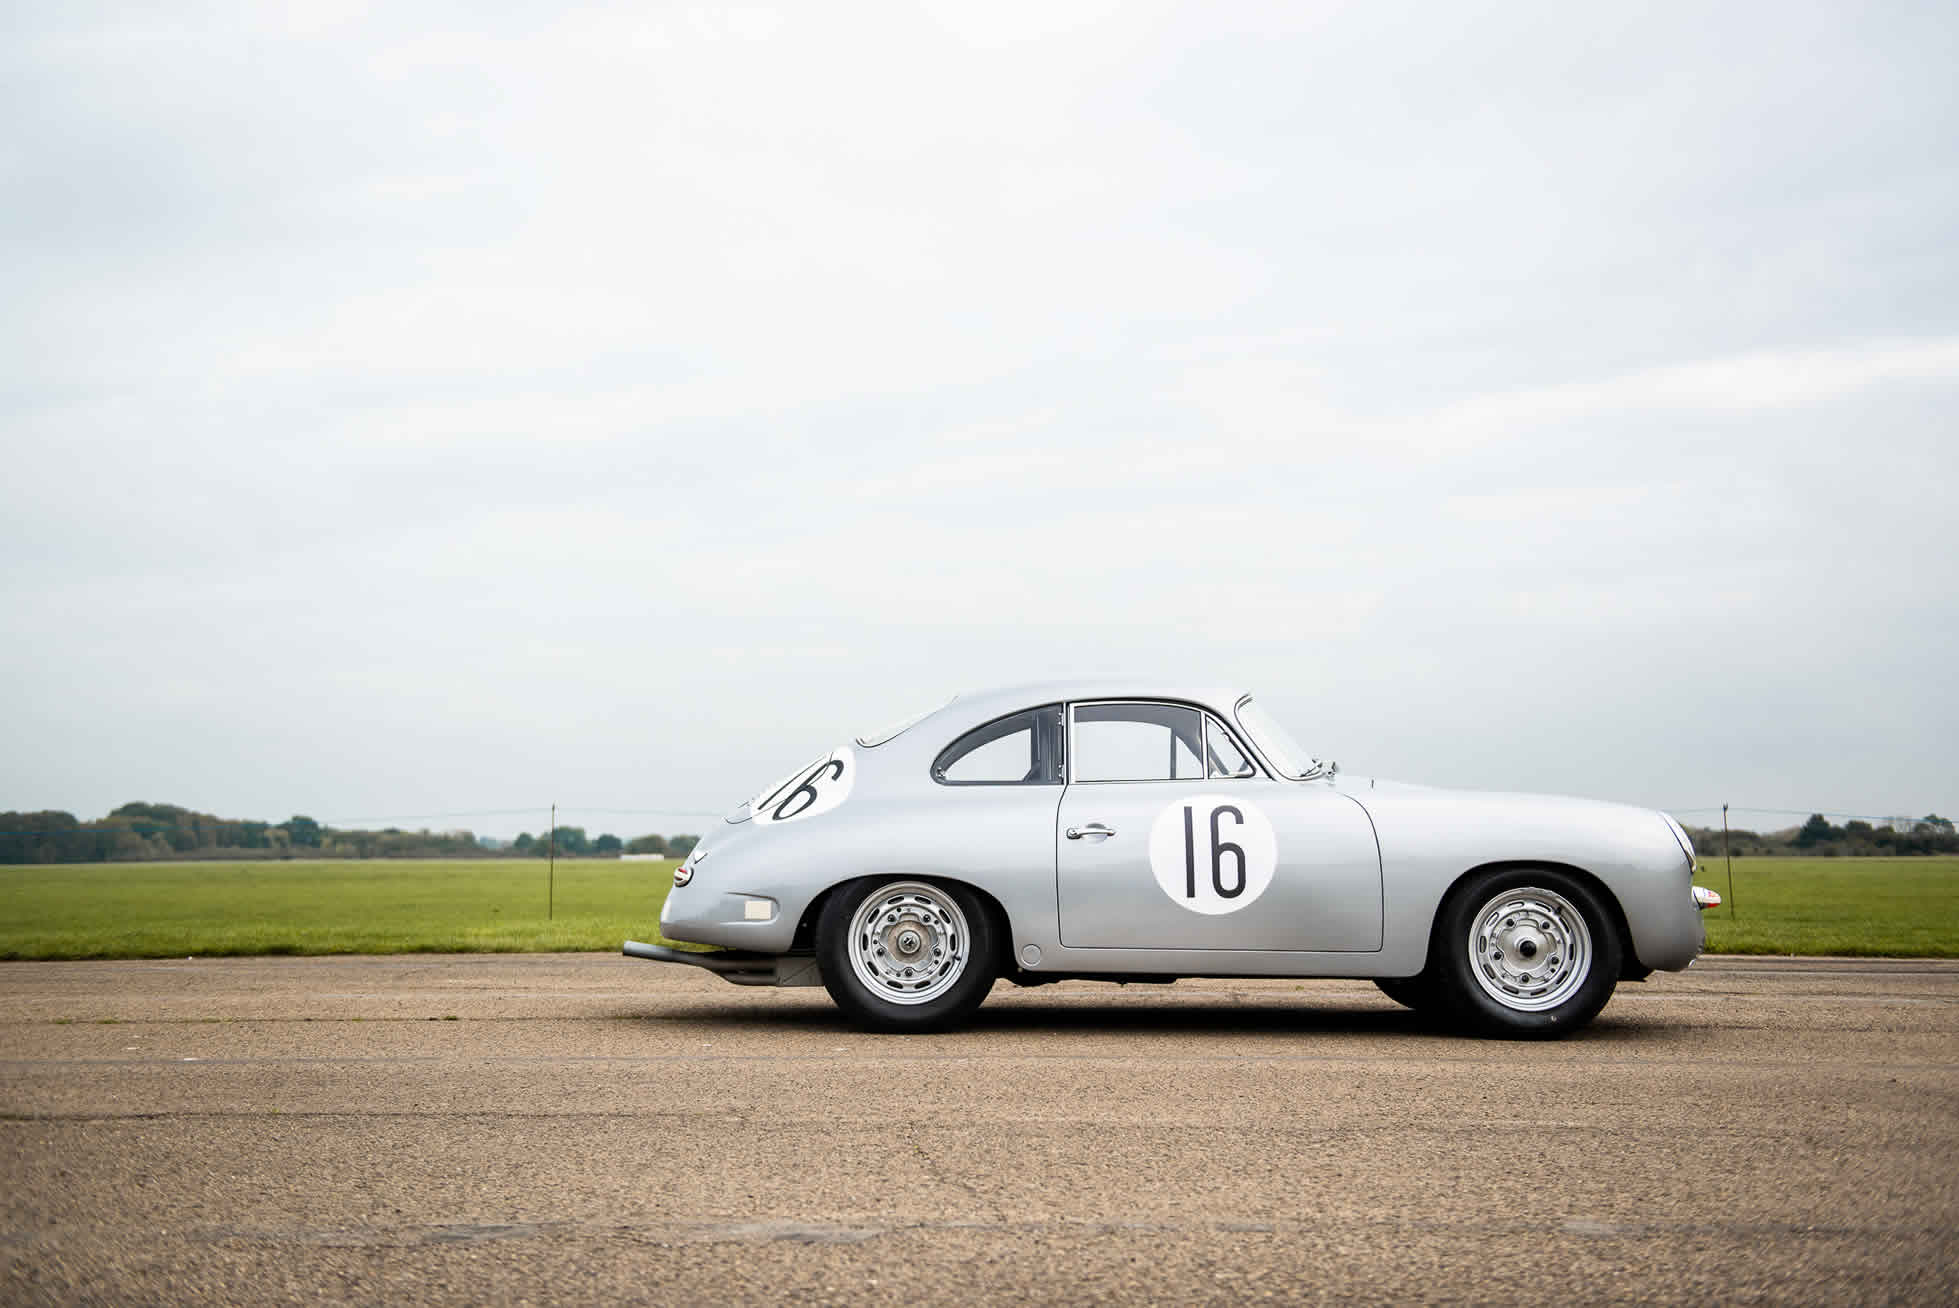 1961 Porsche 356B Carrera GT. For sale at Sports Purpose, Bicester Heritage, Oxon - side view